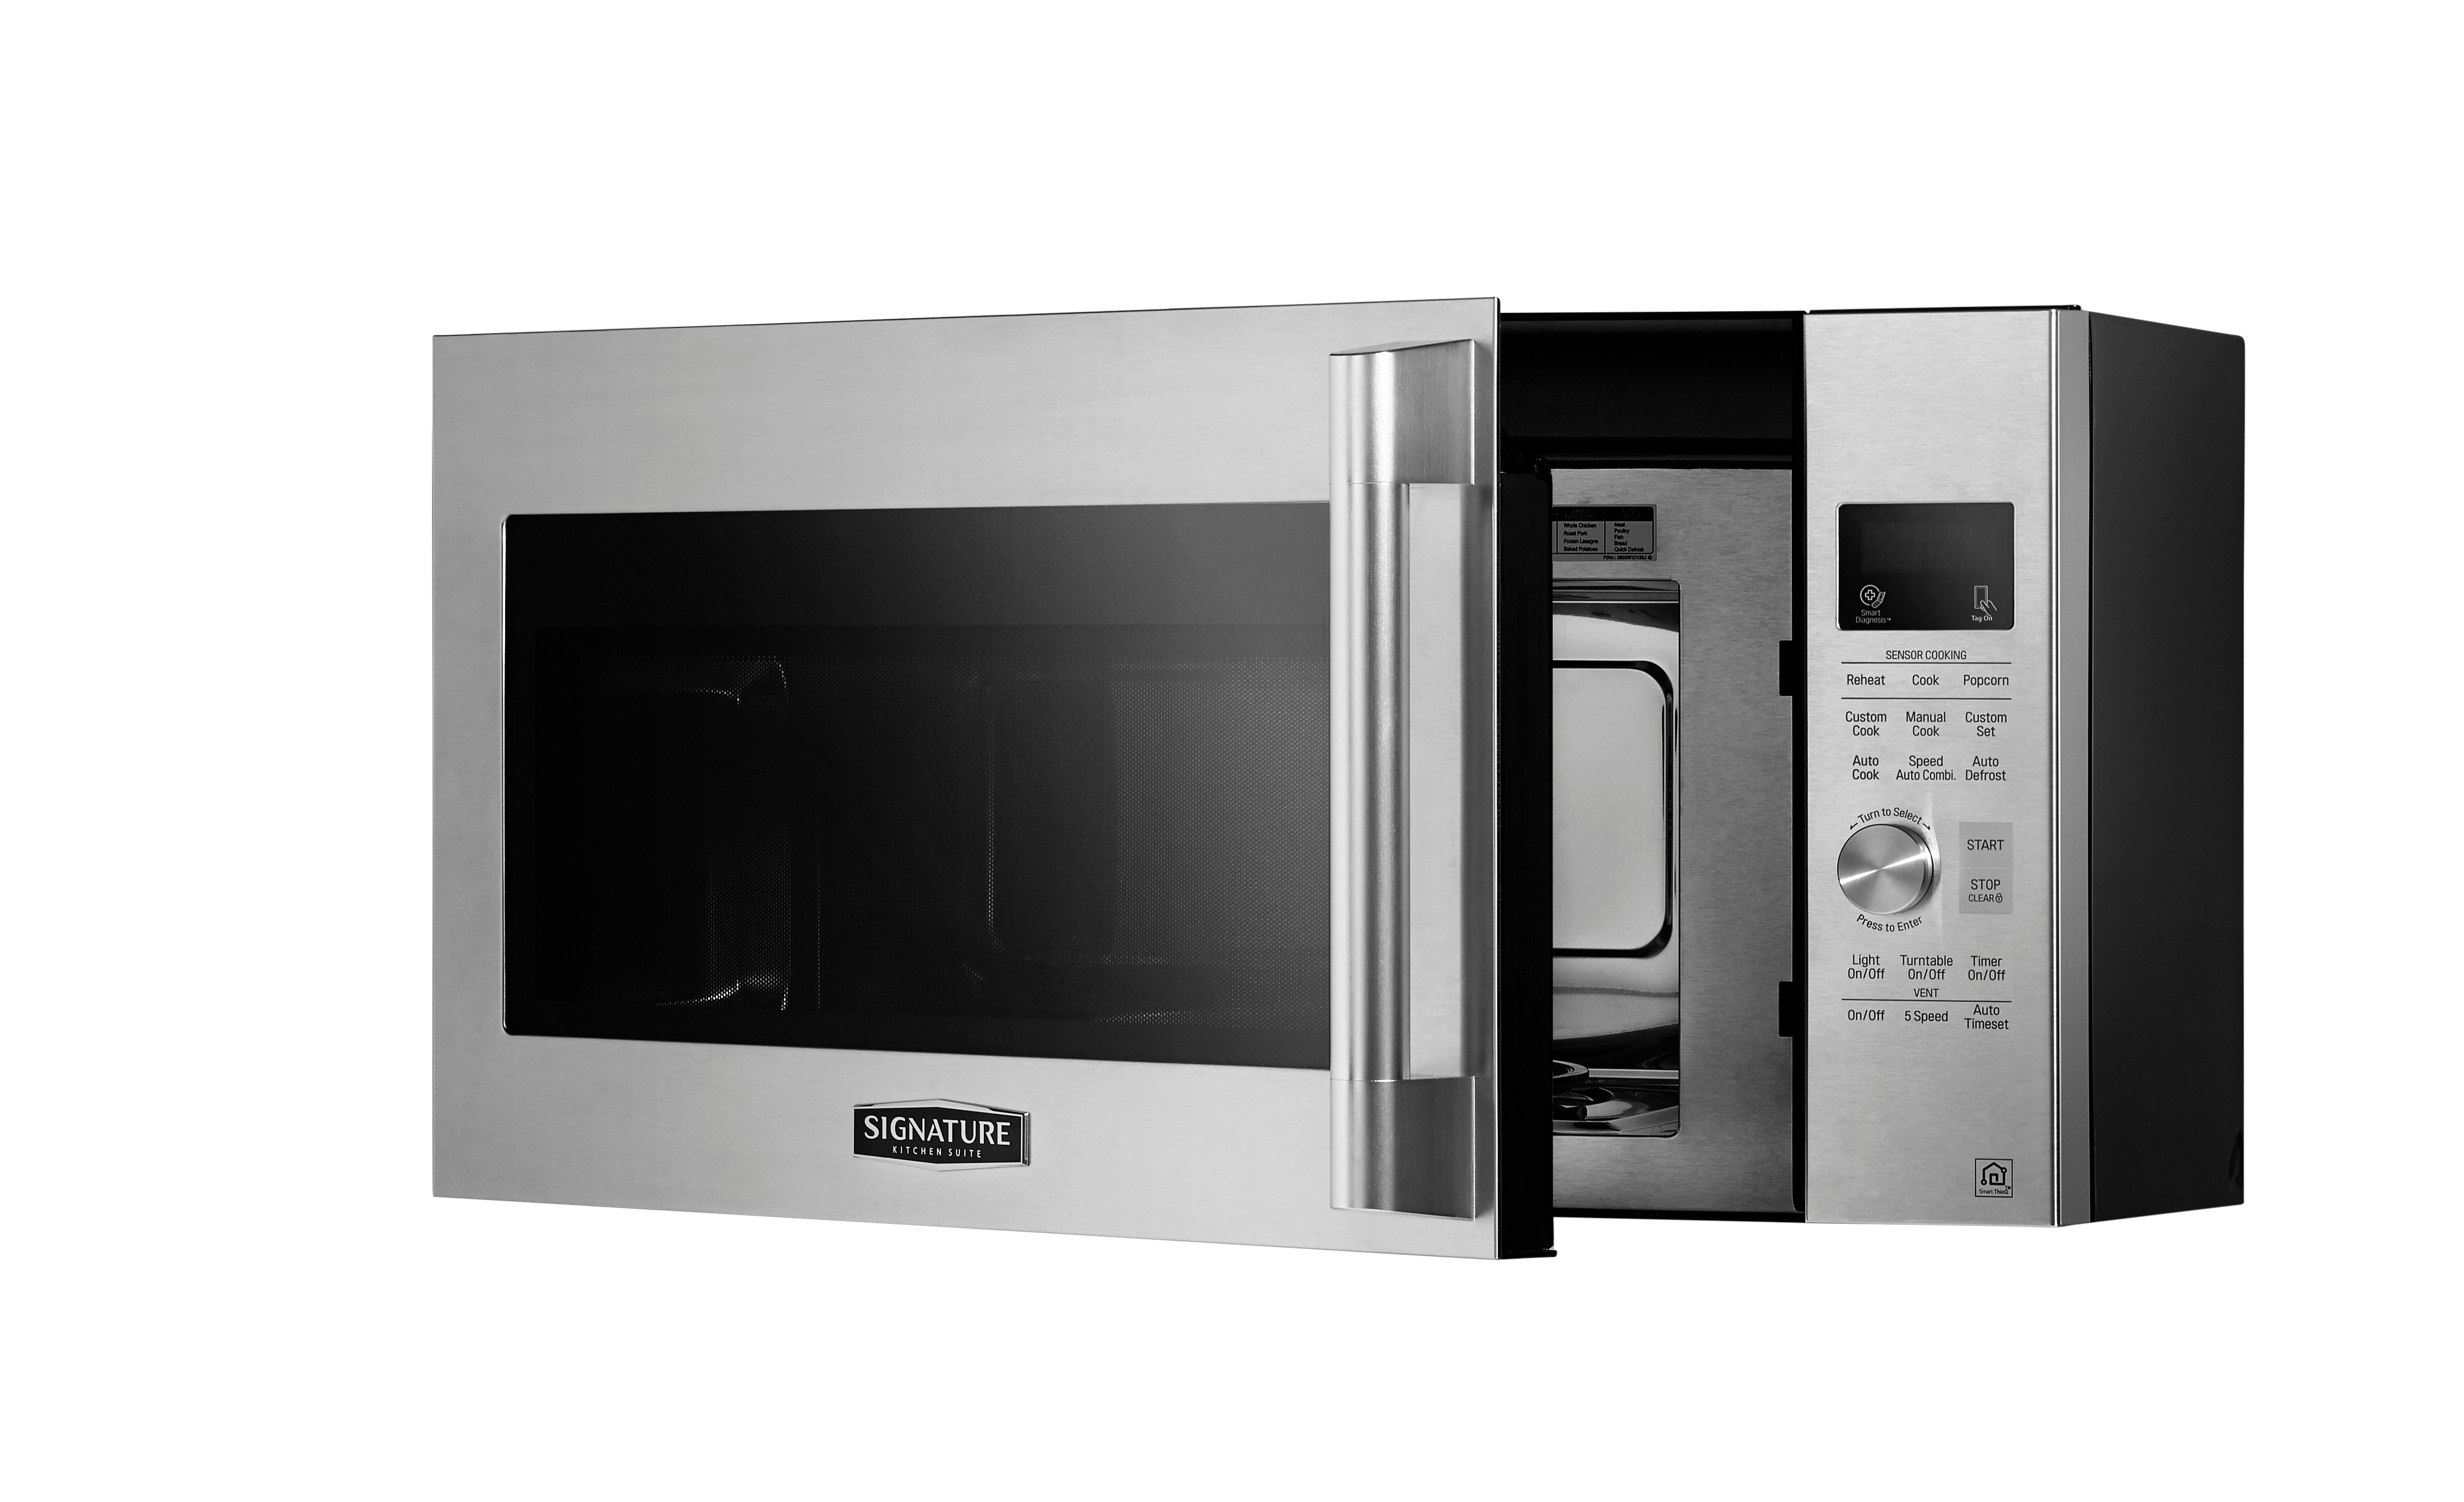 Household Microwave Oven image